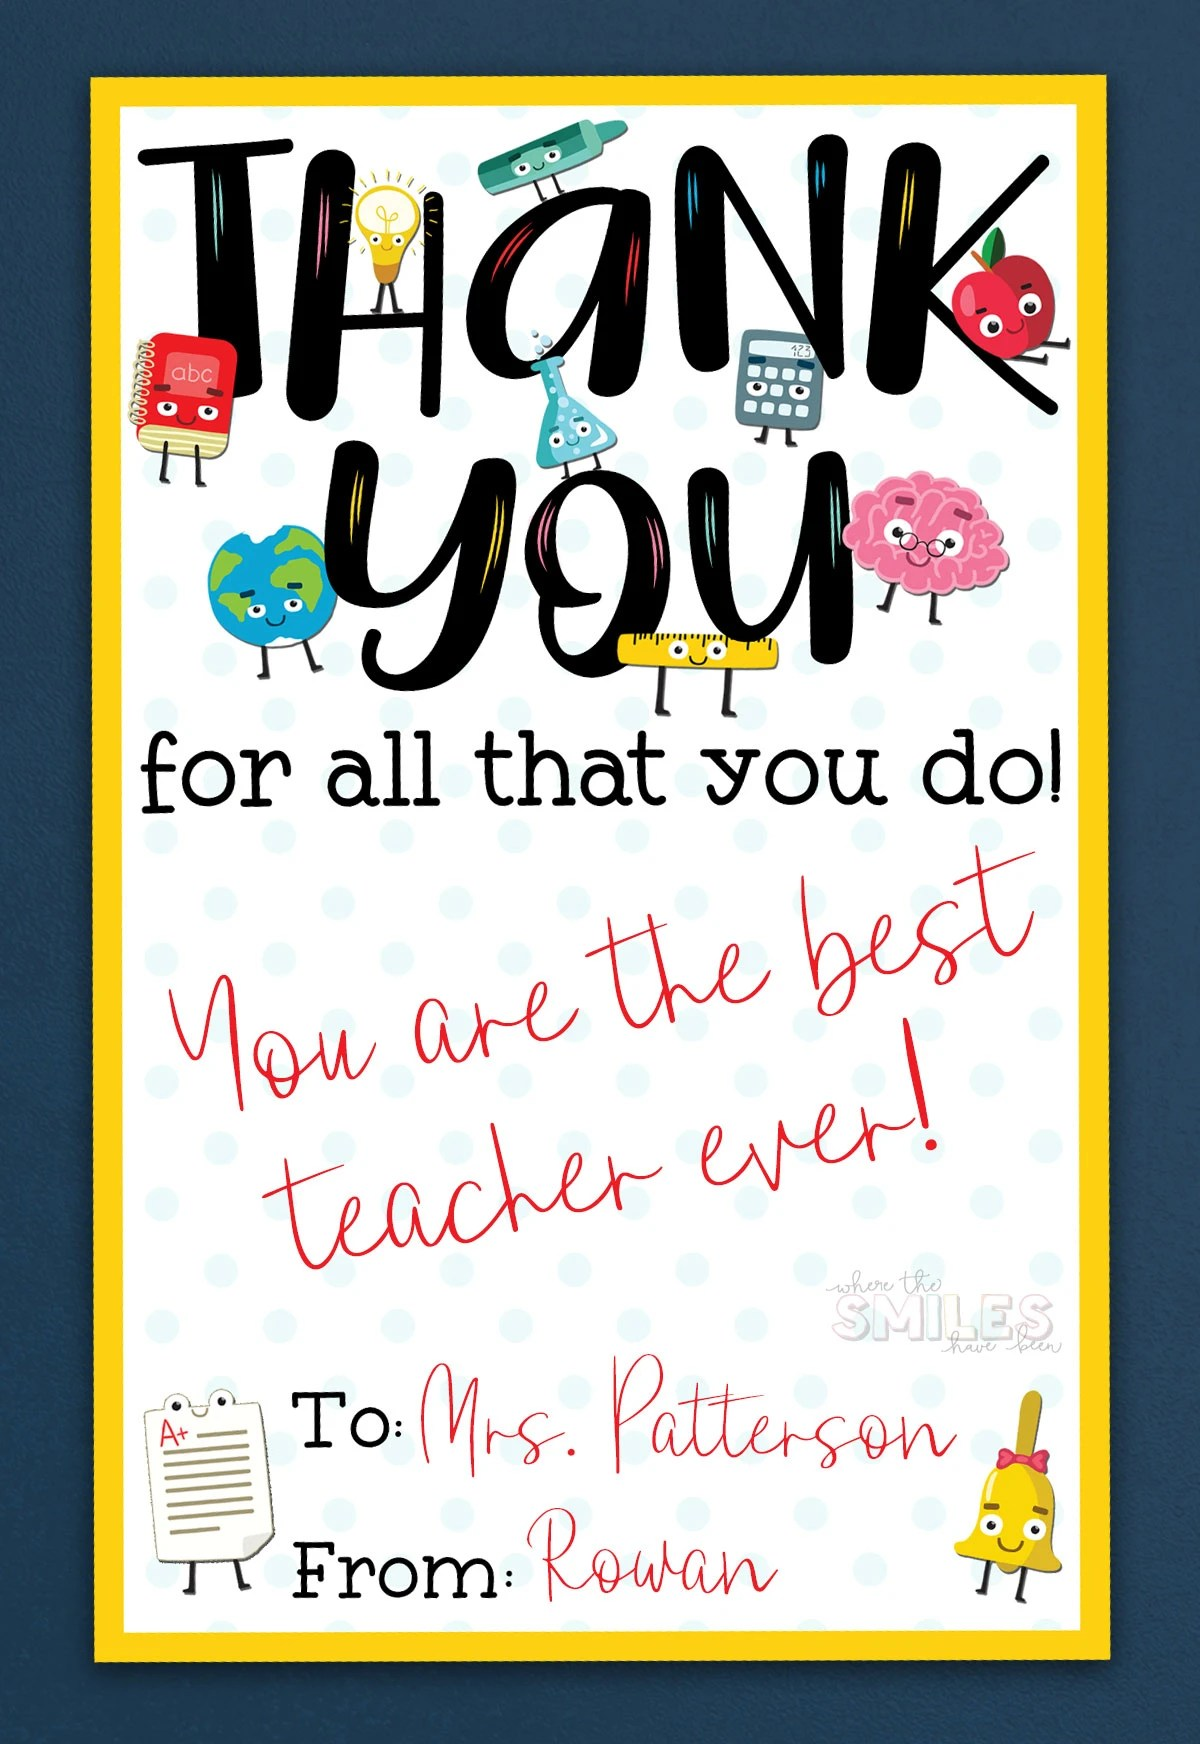 photograph relating to Thank You Teacher Free Printable identified as No cost Trainer Appreciation Thank Yourself Printable - 2 Styles!